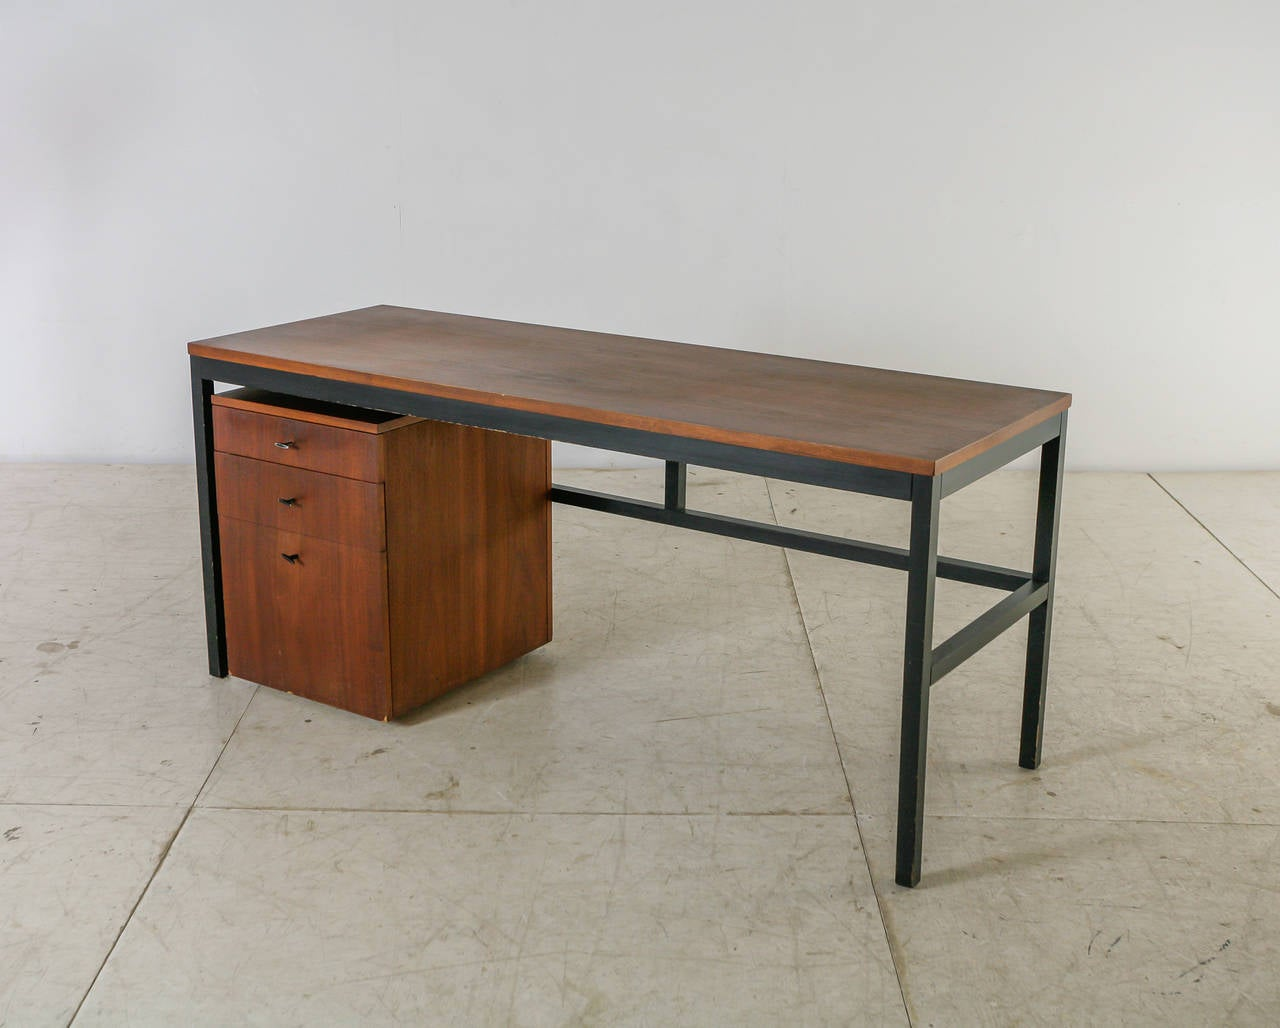 A Milo Baughman desk annex console table, with a free standing chest of drawers on wheels, for Directional Furniture.   Without the cube with the drawers, the table can also function as a console table. The desk is made of a walnut top on an